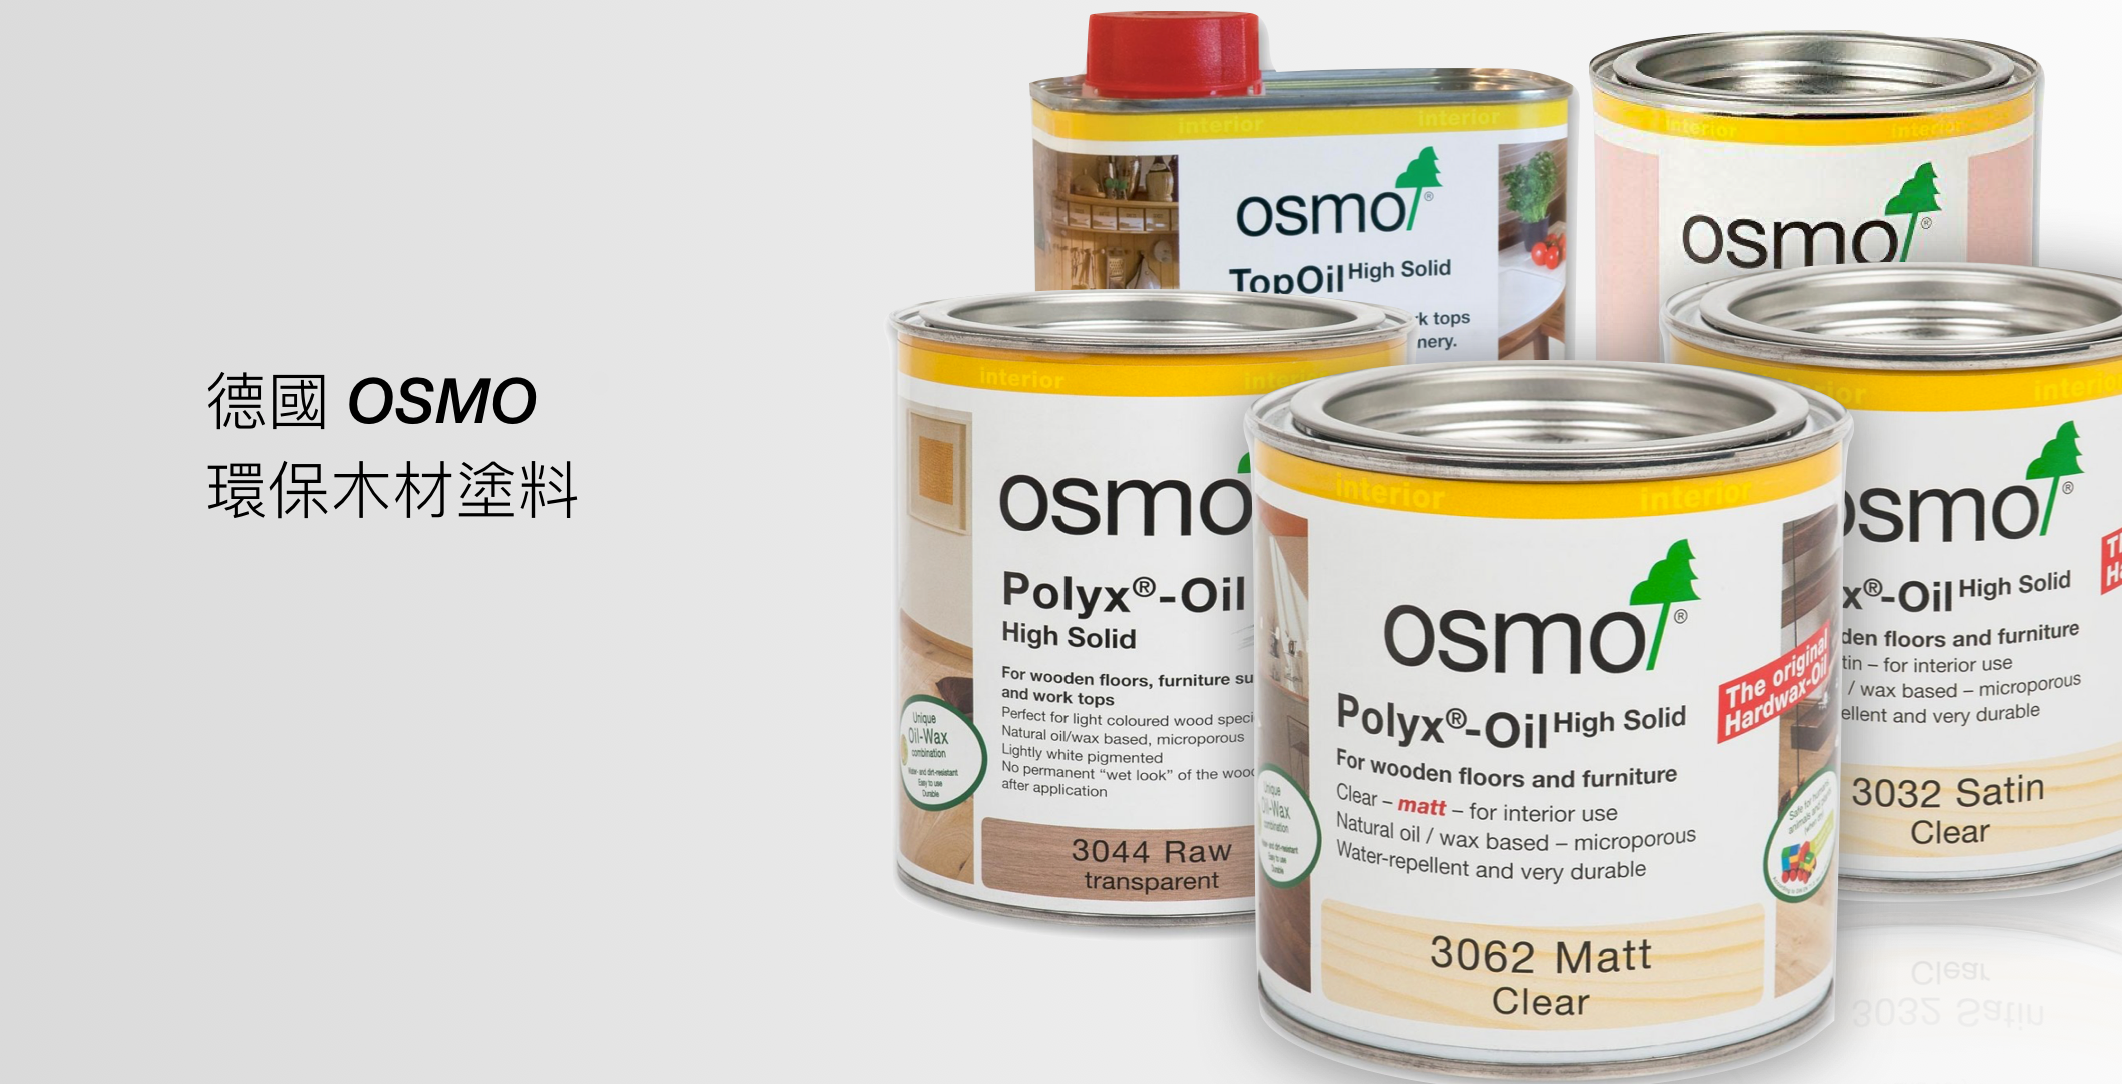 OSMO_product